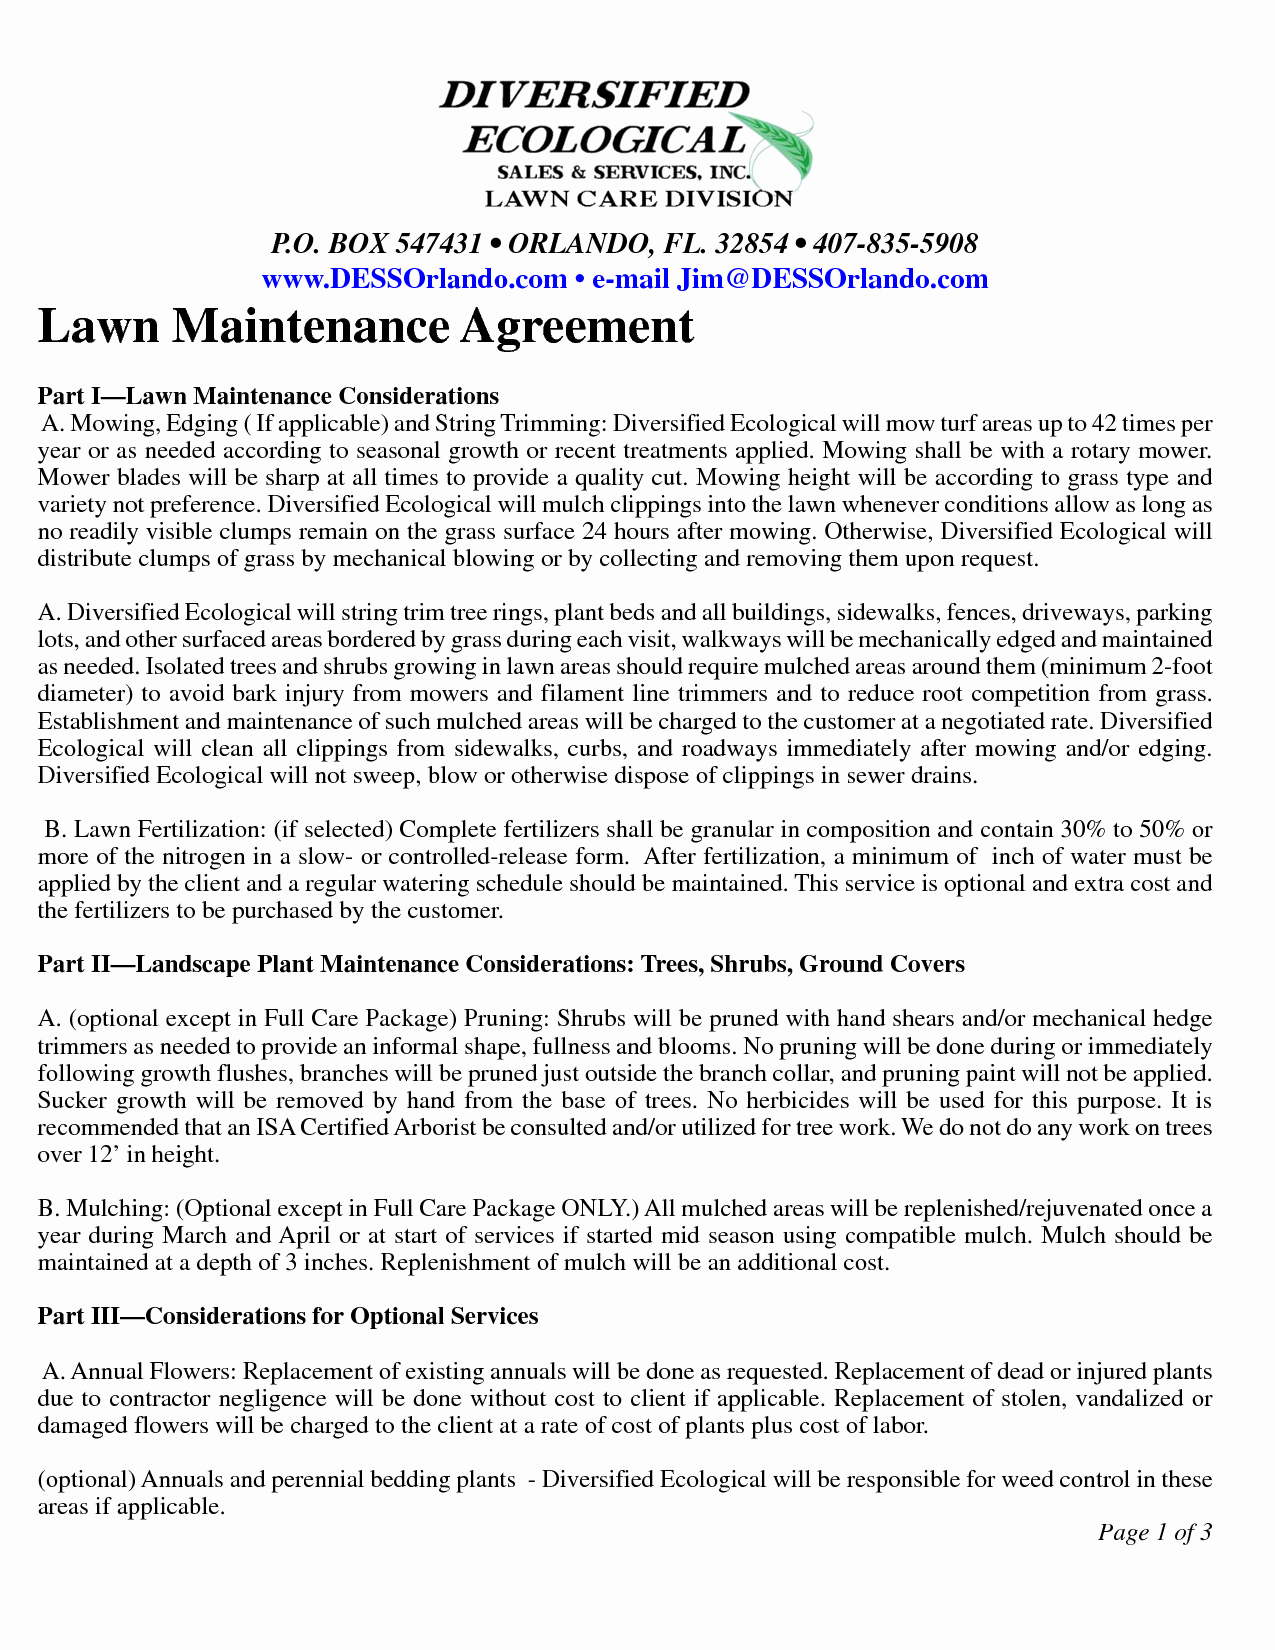 Lawn Care Contract Template Unique Lawn Maintenance Contract Agreement Free Printable Documents